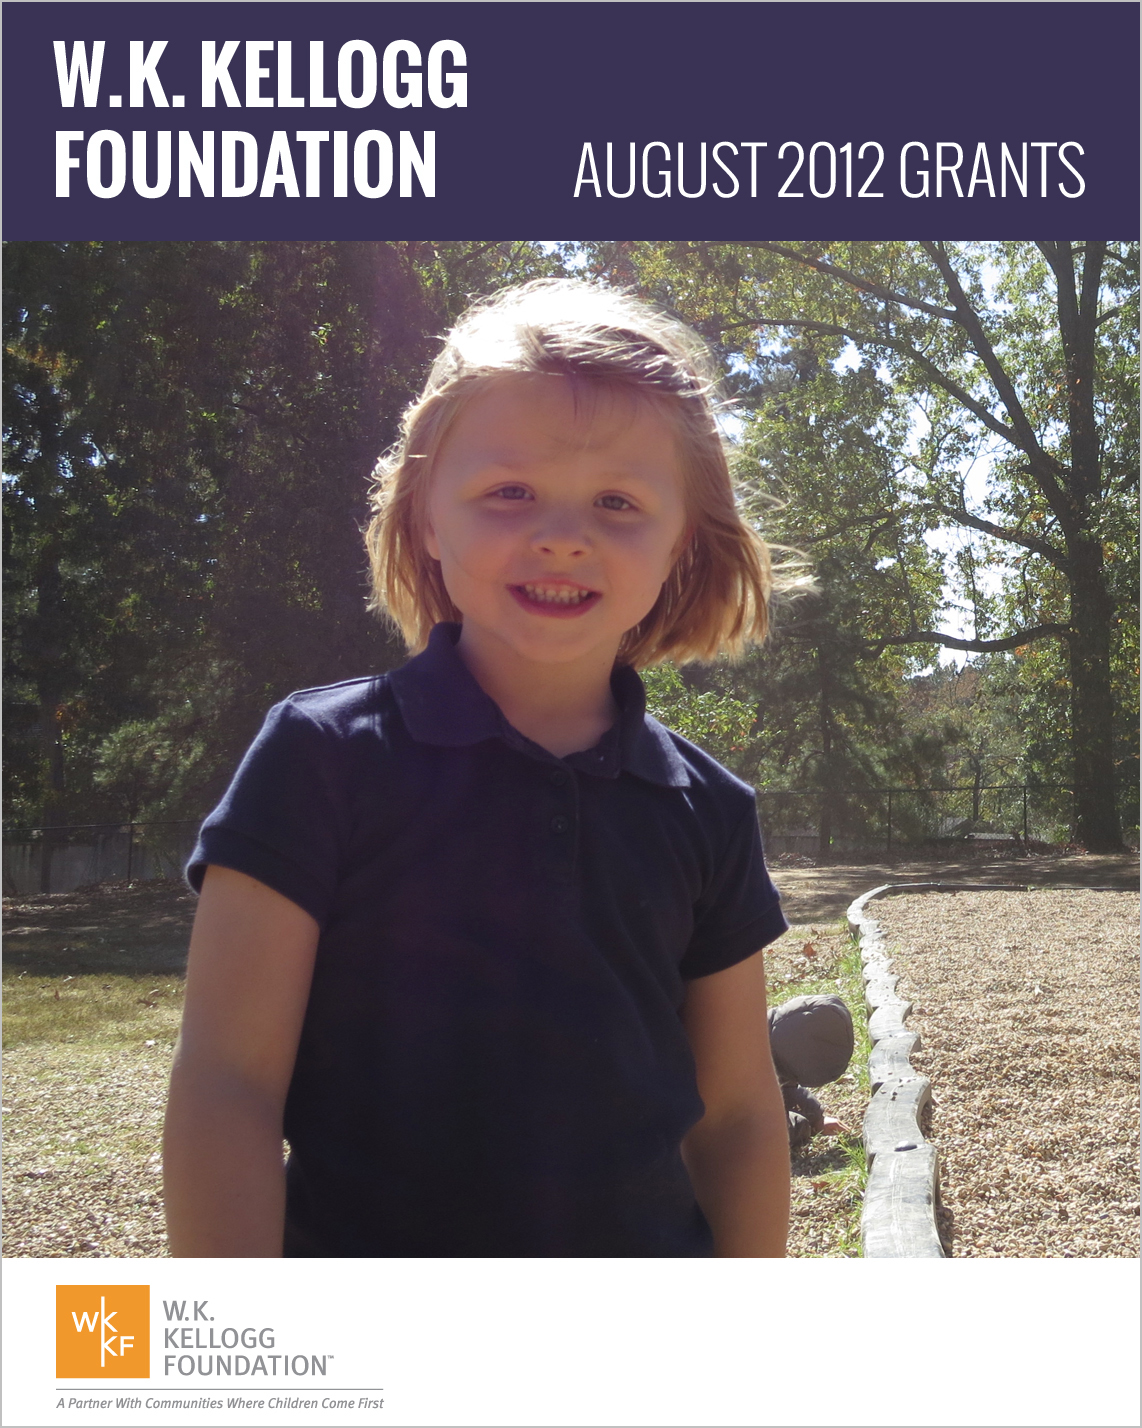 W.K. Kellogg Foundation Grants - August 2012